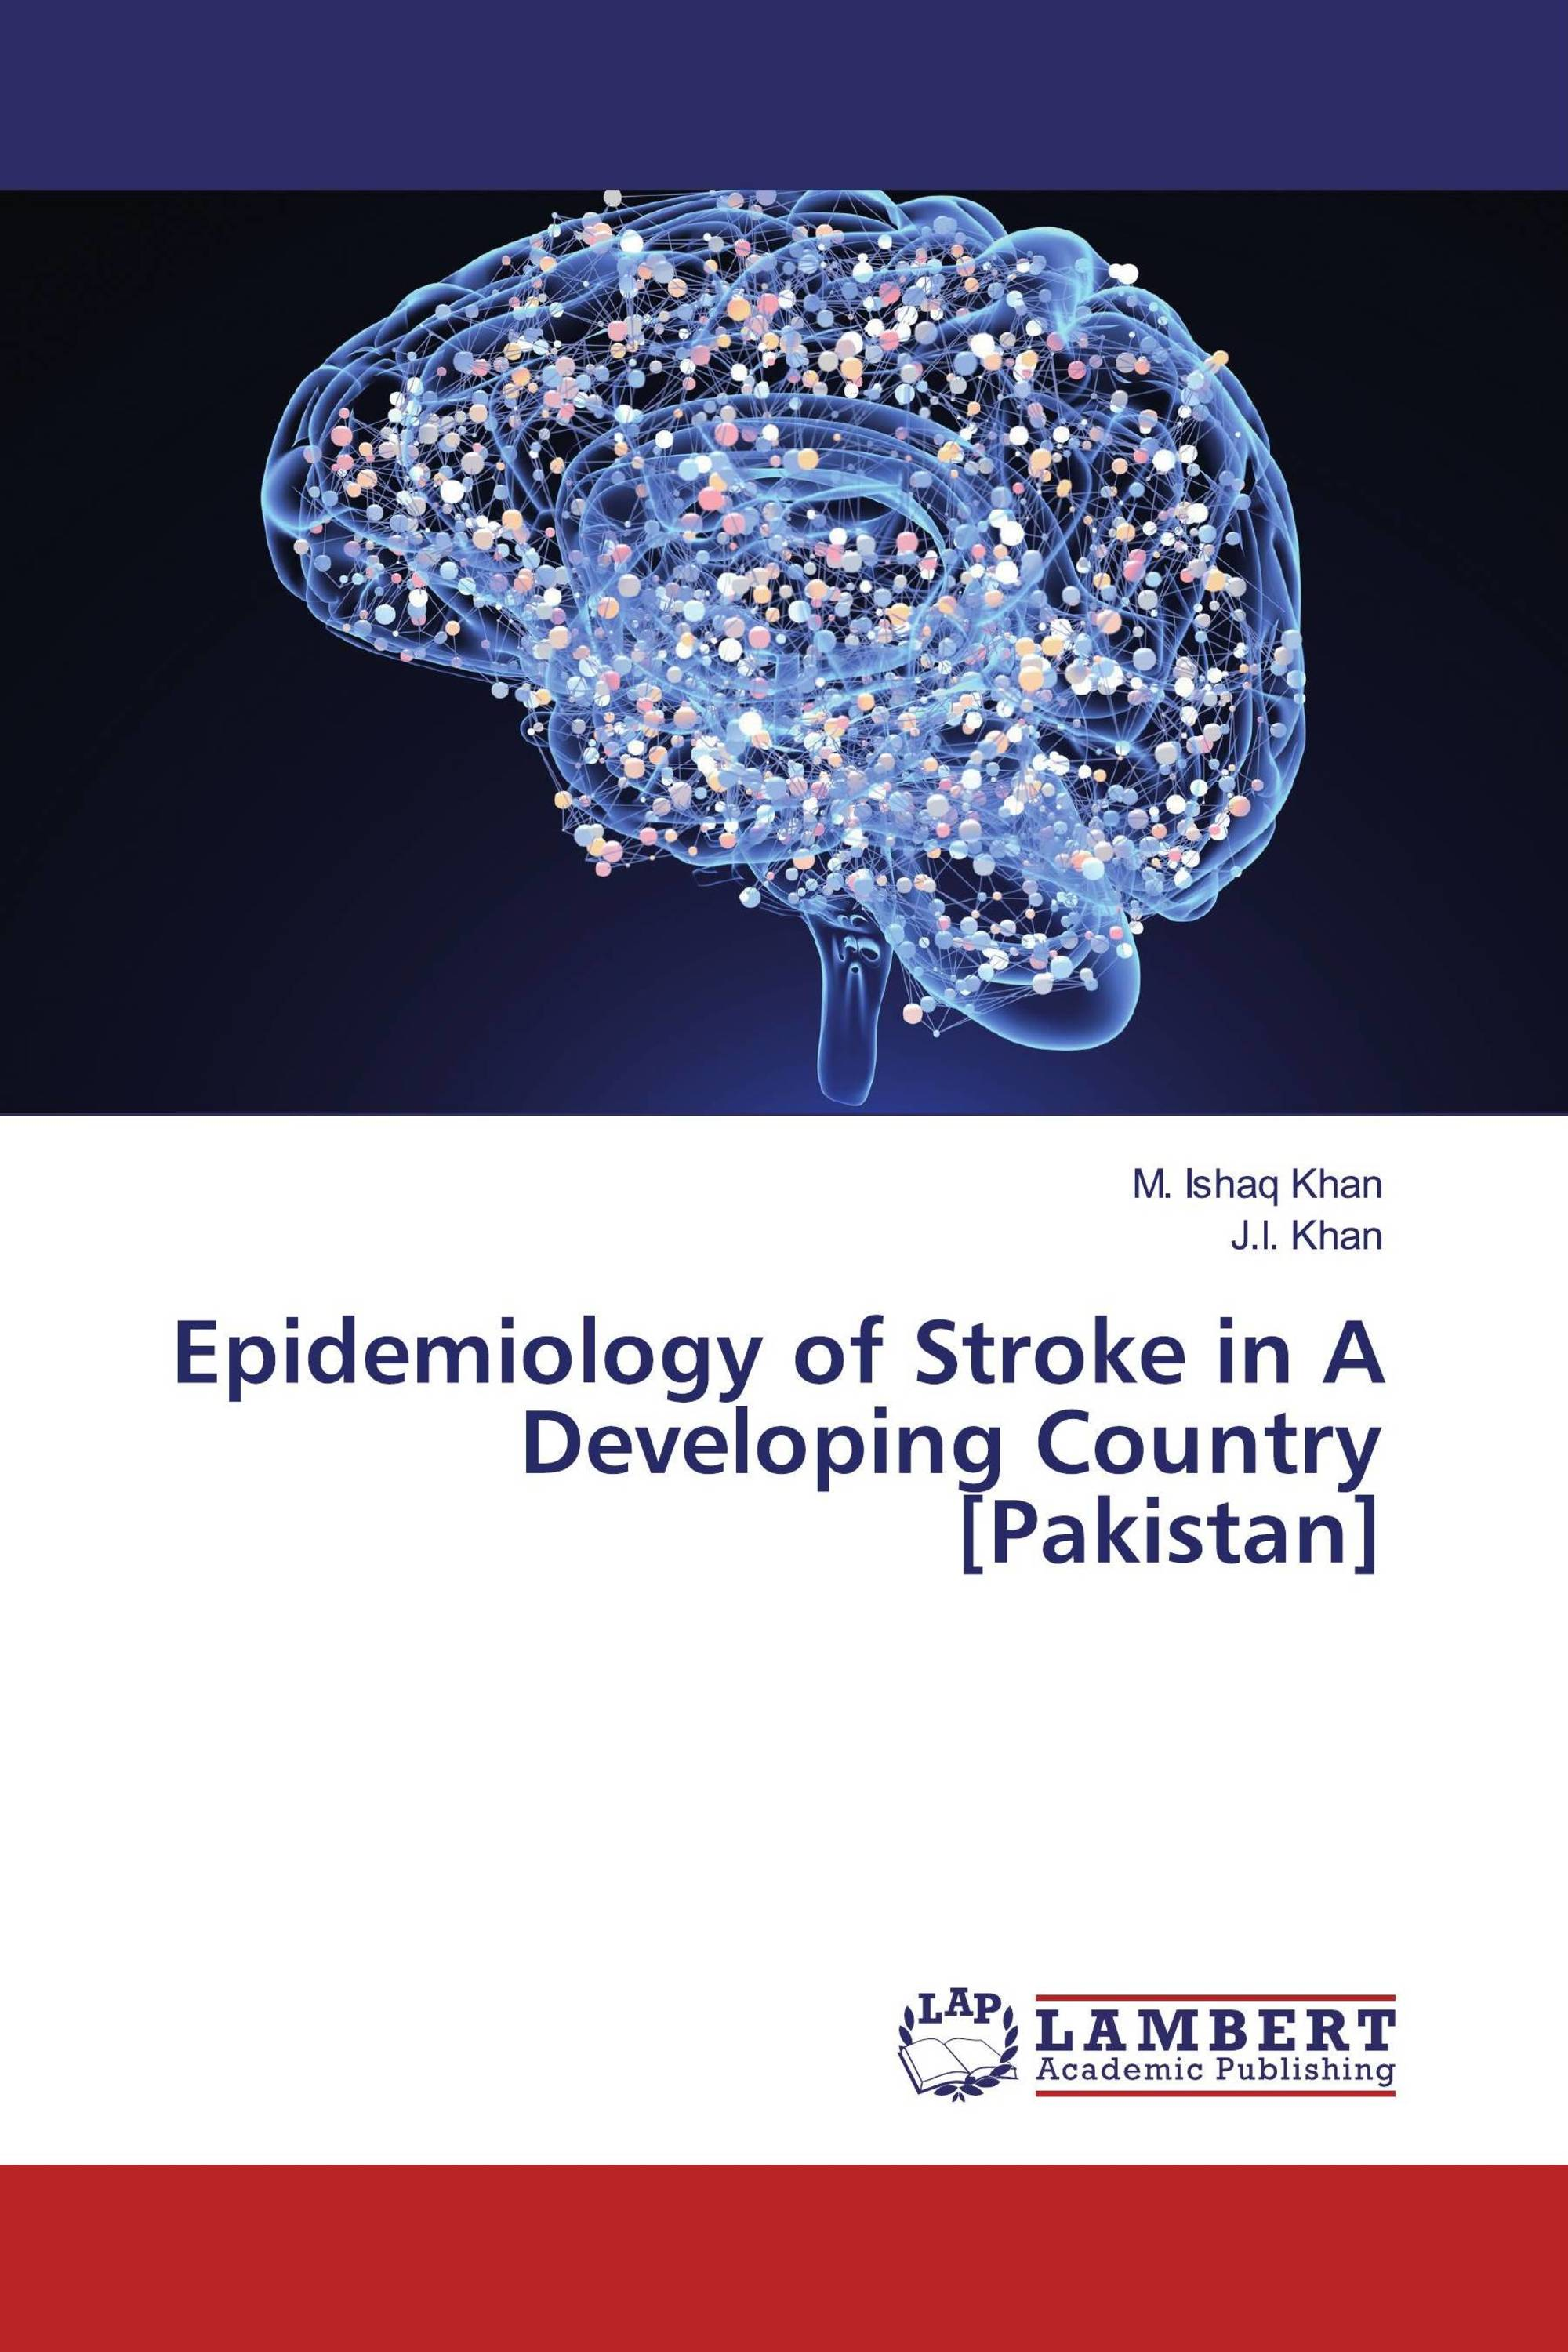 Epidemiology of Stroke in A Developing Country [Pakistan]